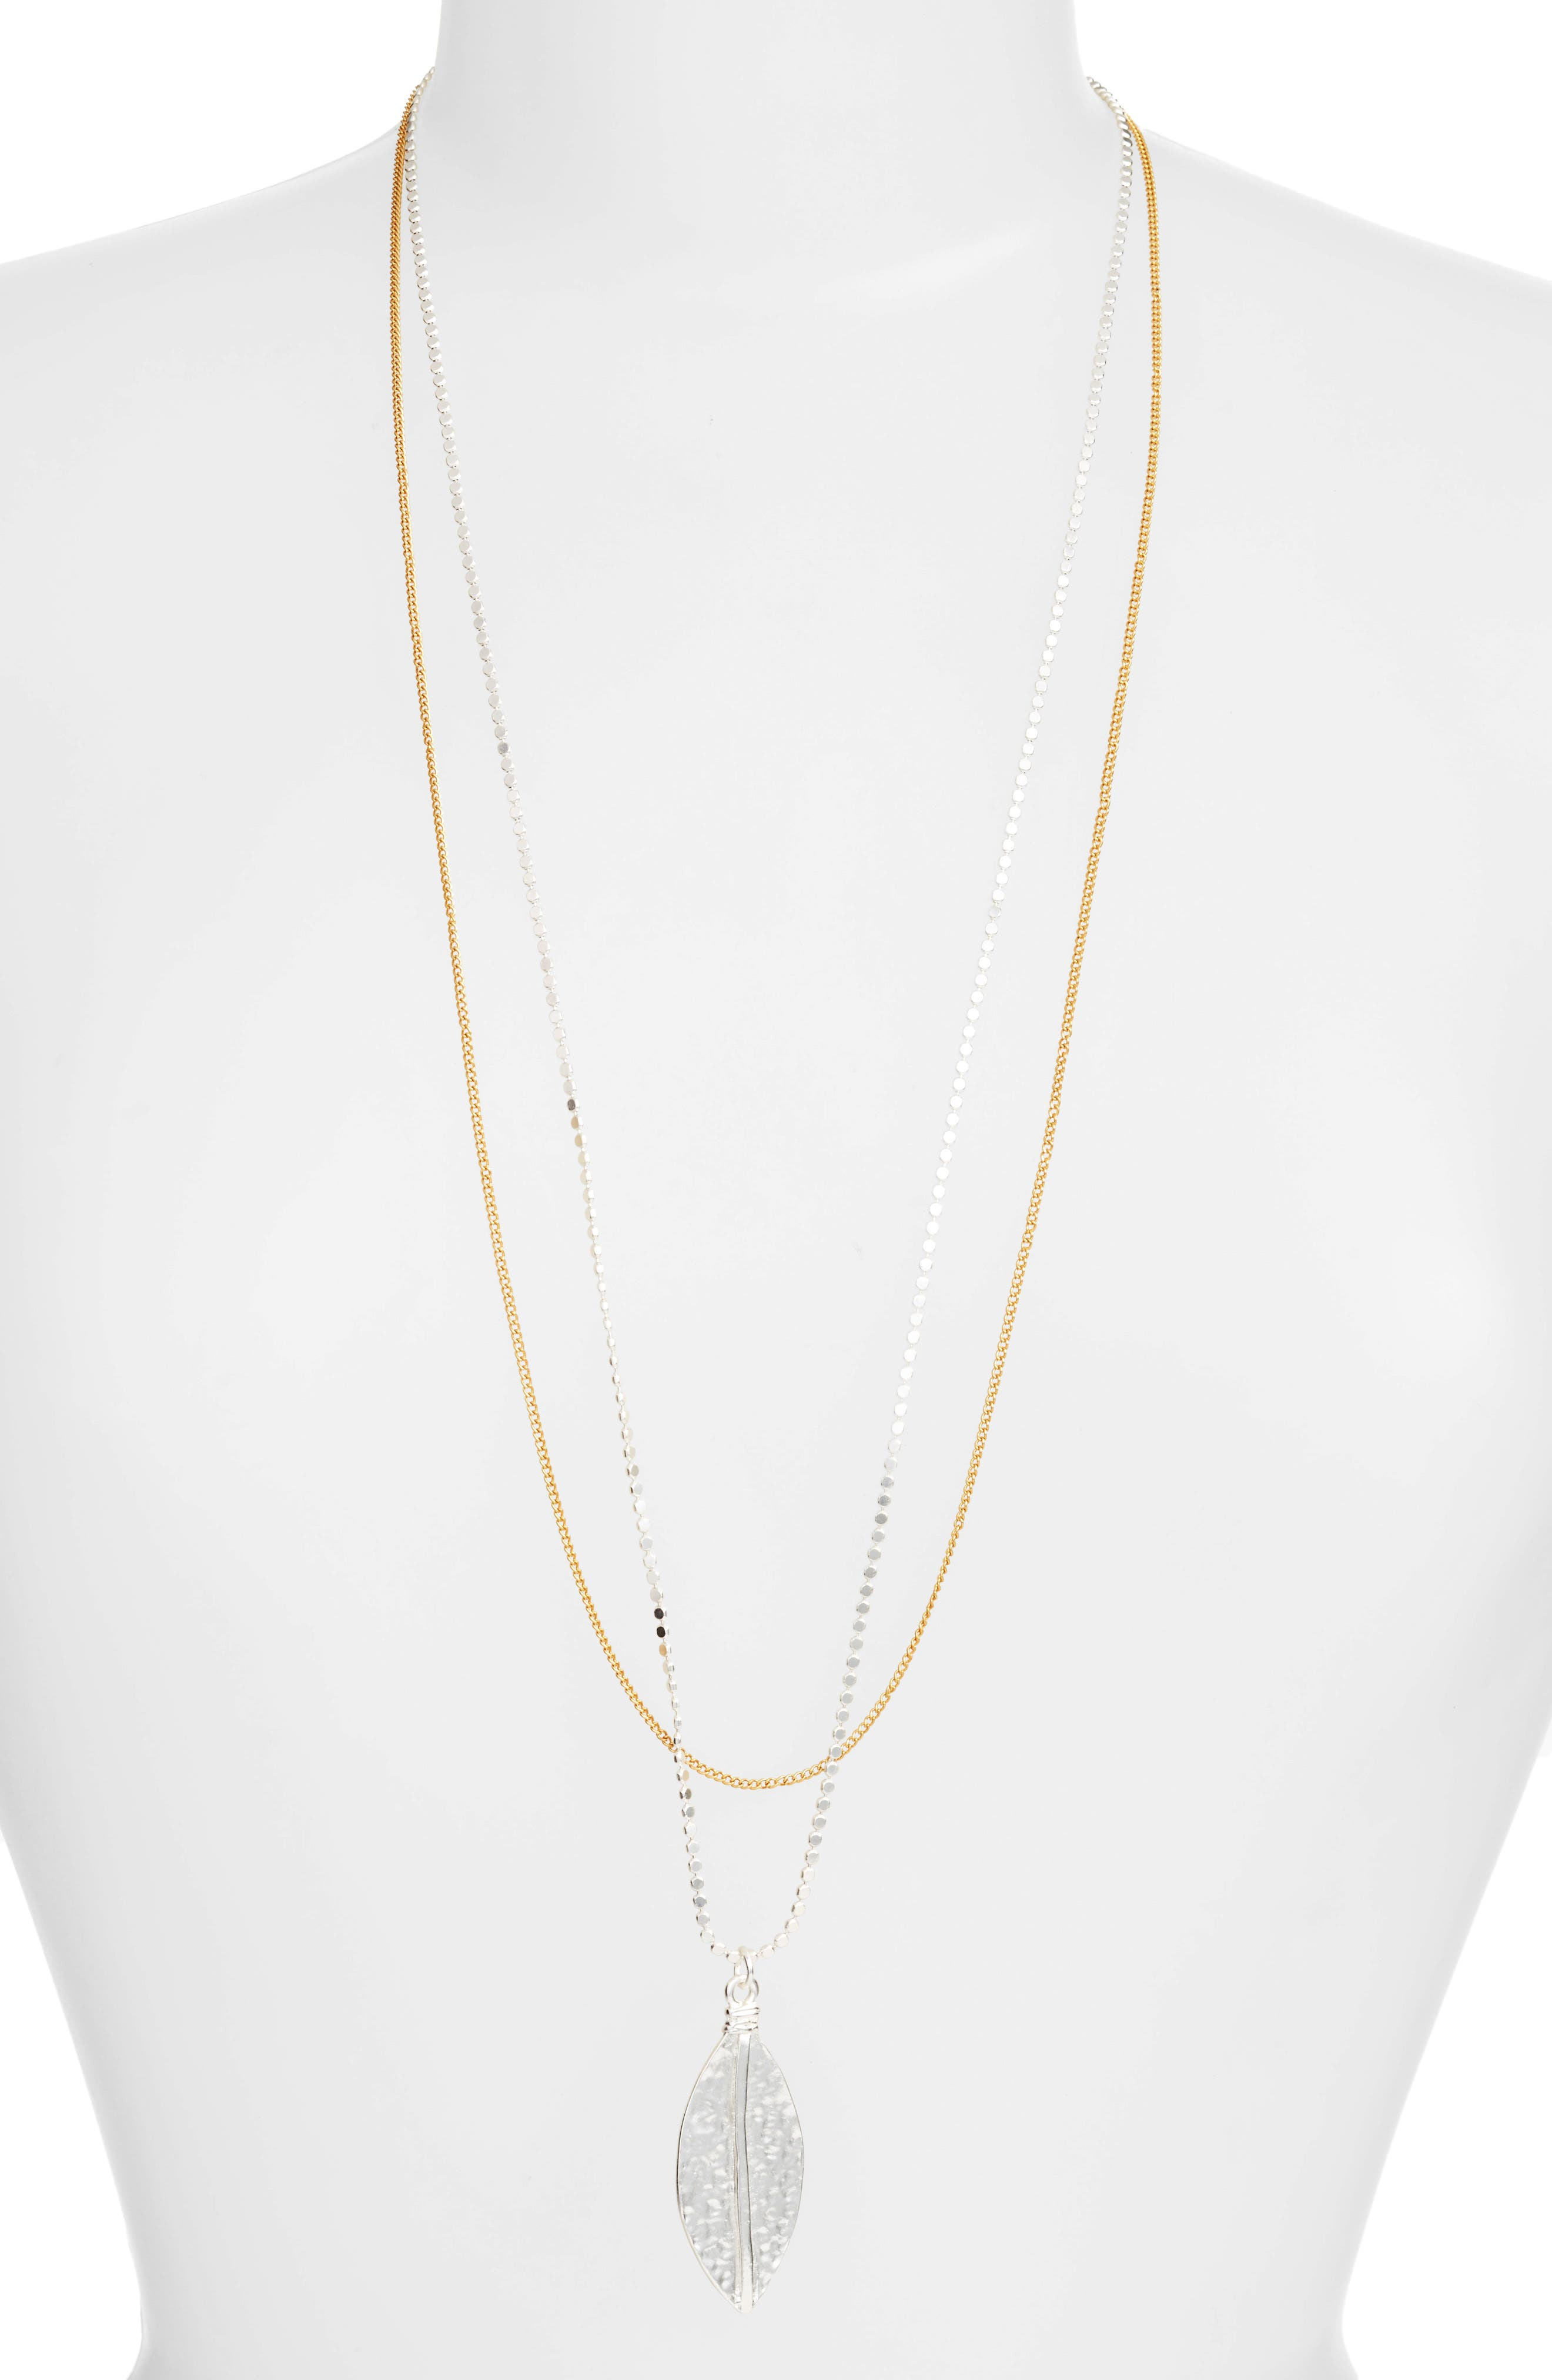 Long Multistrand Necklace,                         Main,                         color, SILVER/GOLD MIX